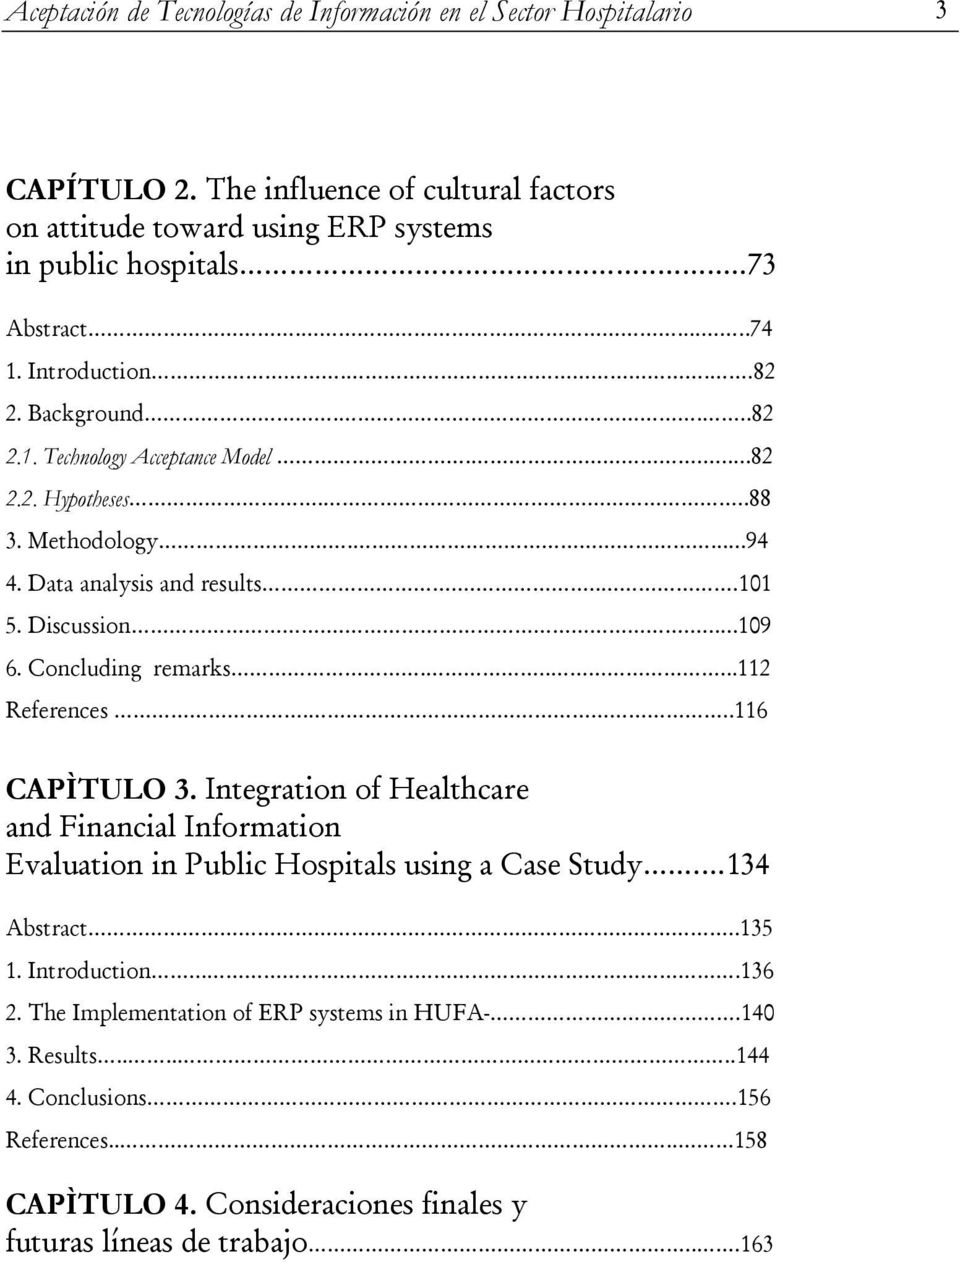 Concluding remarks......112 References...116 CAPÌTULO 3. Integration of Healthcare and Financial Information Evaluation in Public Hospitals using a Case Study. 134 Abstract..135 1.